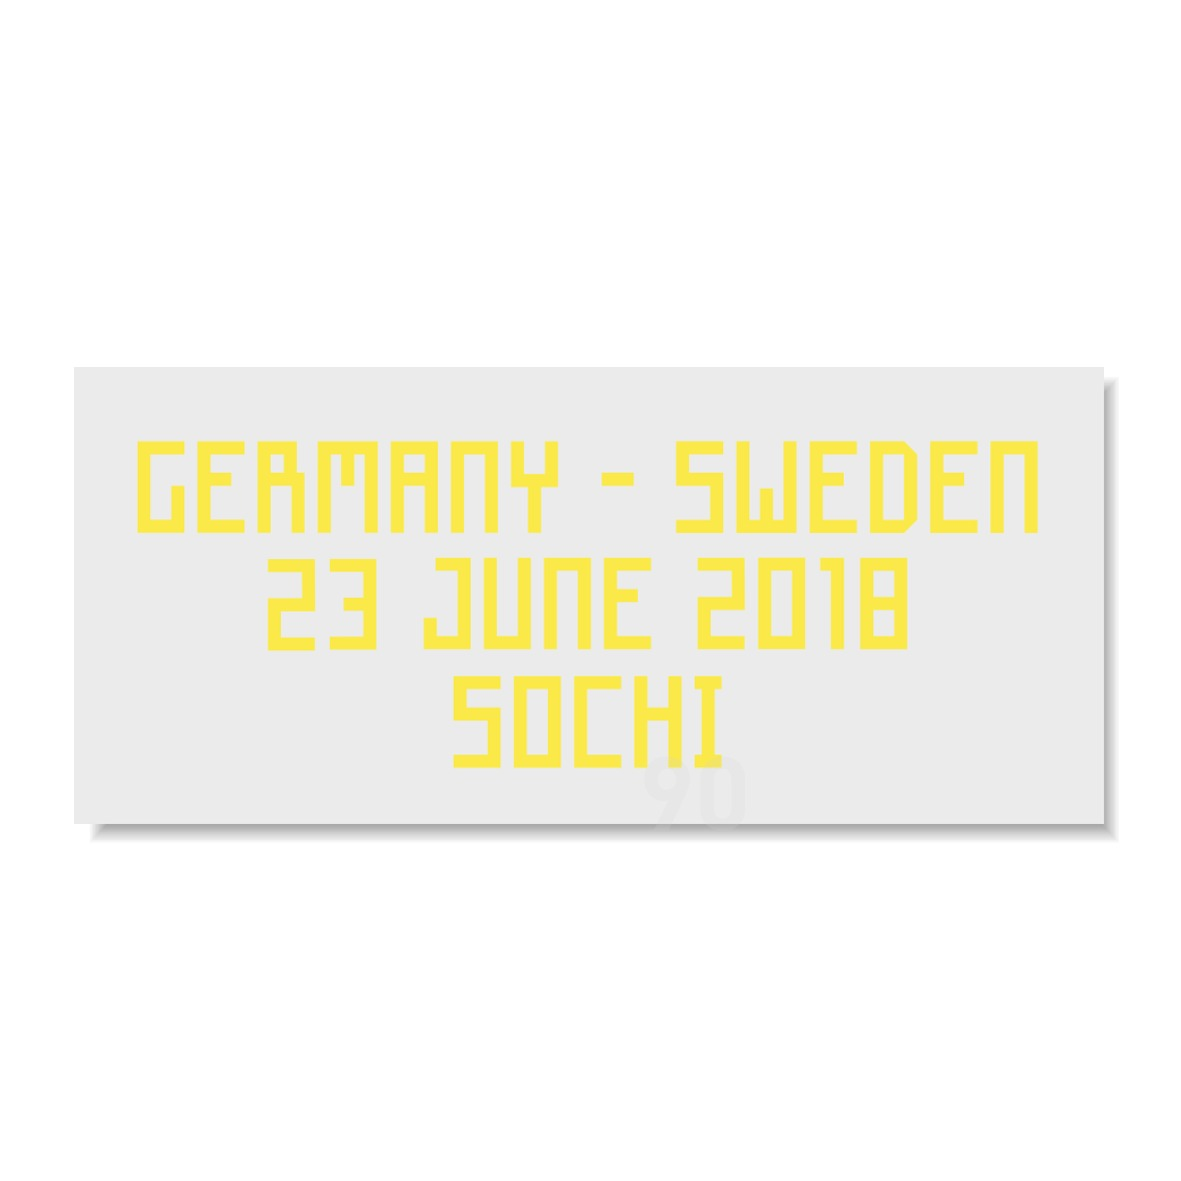 WM-2018-Schweden-Sverige-match-detail-print-Shirt-World-Cup-18-Jersey